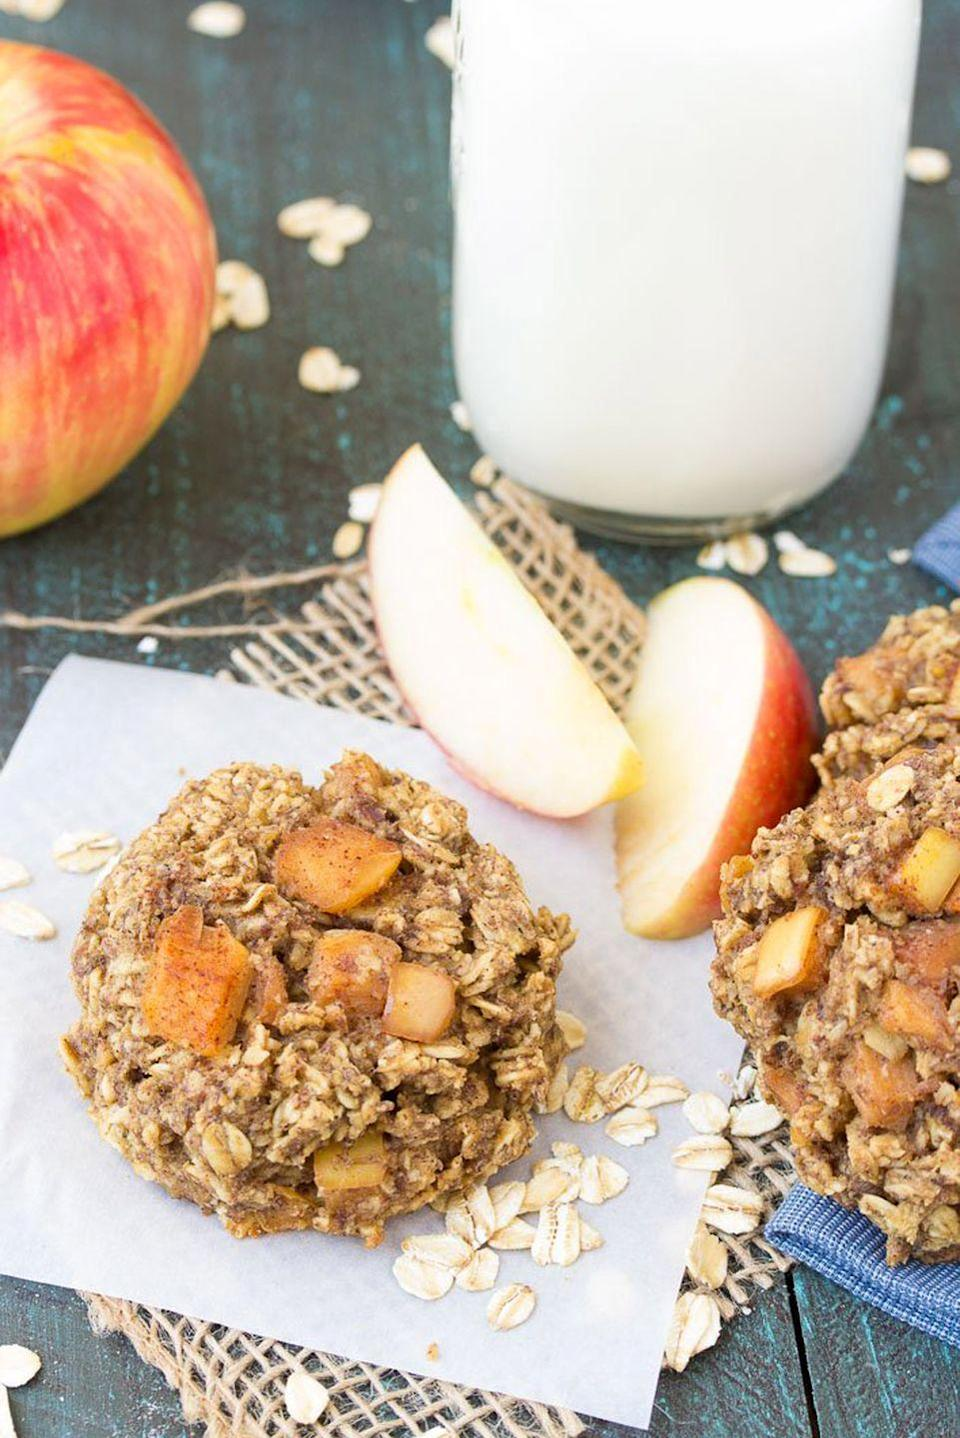 "<p>It's every kids' dream—cookies for breakfast! And don't worry about being the parent who's always serving sweets. This healthy treat is filled with whole grain oats, fresh apples, and spices.</p><p><strong>Get the recipe at <a href=""https://kristineskitchenblog.com/apple-pie-breakfast-cookies/amp/"" rel=""nofollow noopener"" target=""_blank"" data-ylk=""slk:Kristine's Kitchen"" class=""link rapid-noclick-resp"">Kristine's Kitchen</a>.</strong></p><p><a class=""link rapid-noclick-resp"" href=""https://www.amazon.com/OXO-Grips-Trigger-Cream-Scoop/dp/B00004OCIW?tag=syn-yahoo-20&ascsubtag=%5Bartid%7C10050.g.650%5Bsrc%7Cyahoo-us"" rel=""nofollow noopener"" target=""_blank"" data-ylk=""slk:SHOP ICE CREAM SCOOPS"">SHOP ICE CREAM SCOOPS</a><br></p>"